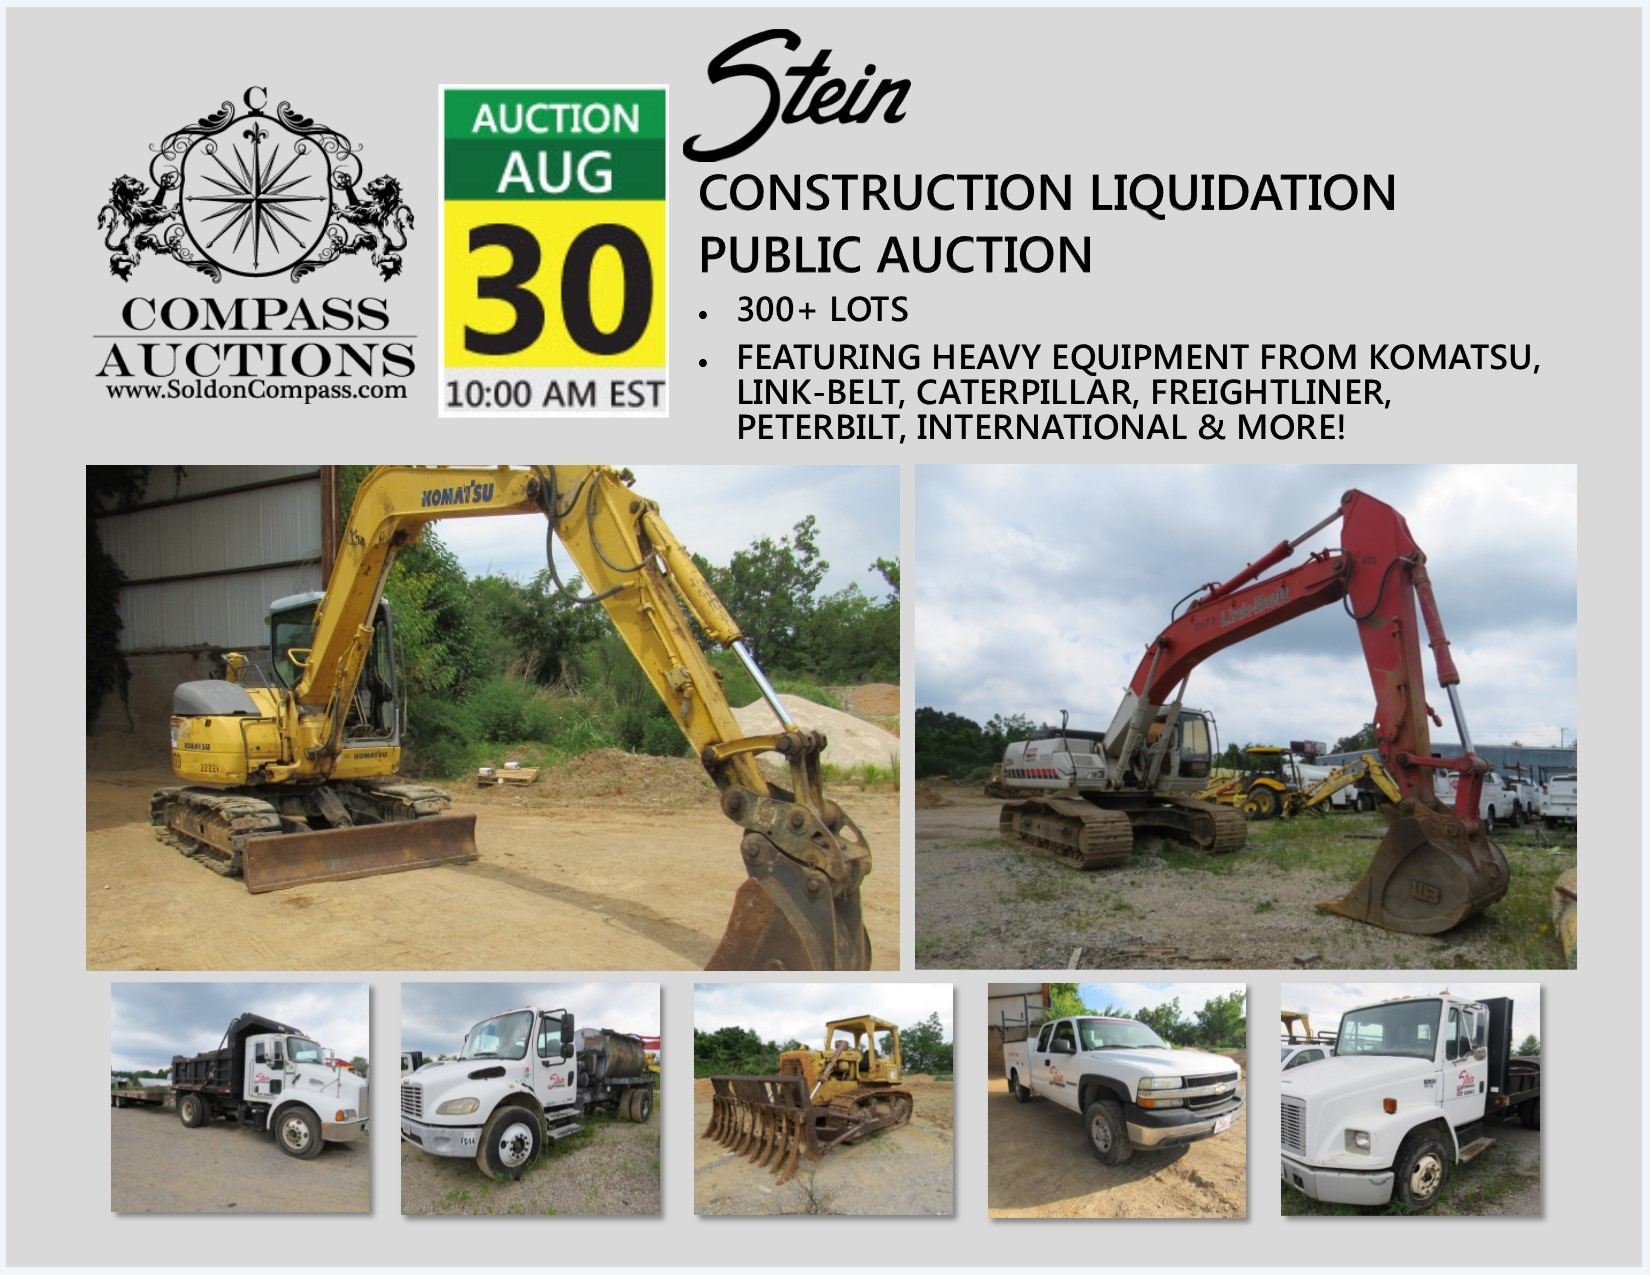 Stein Construction Liquidation Auction August 30, 2017